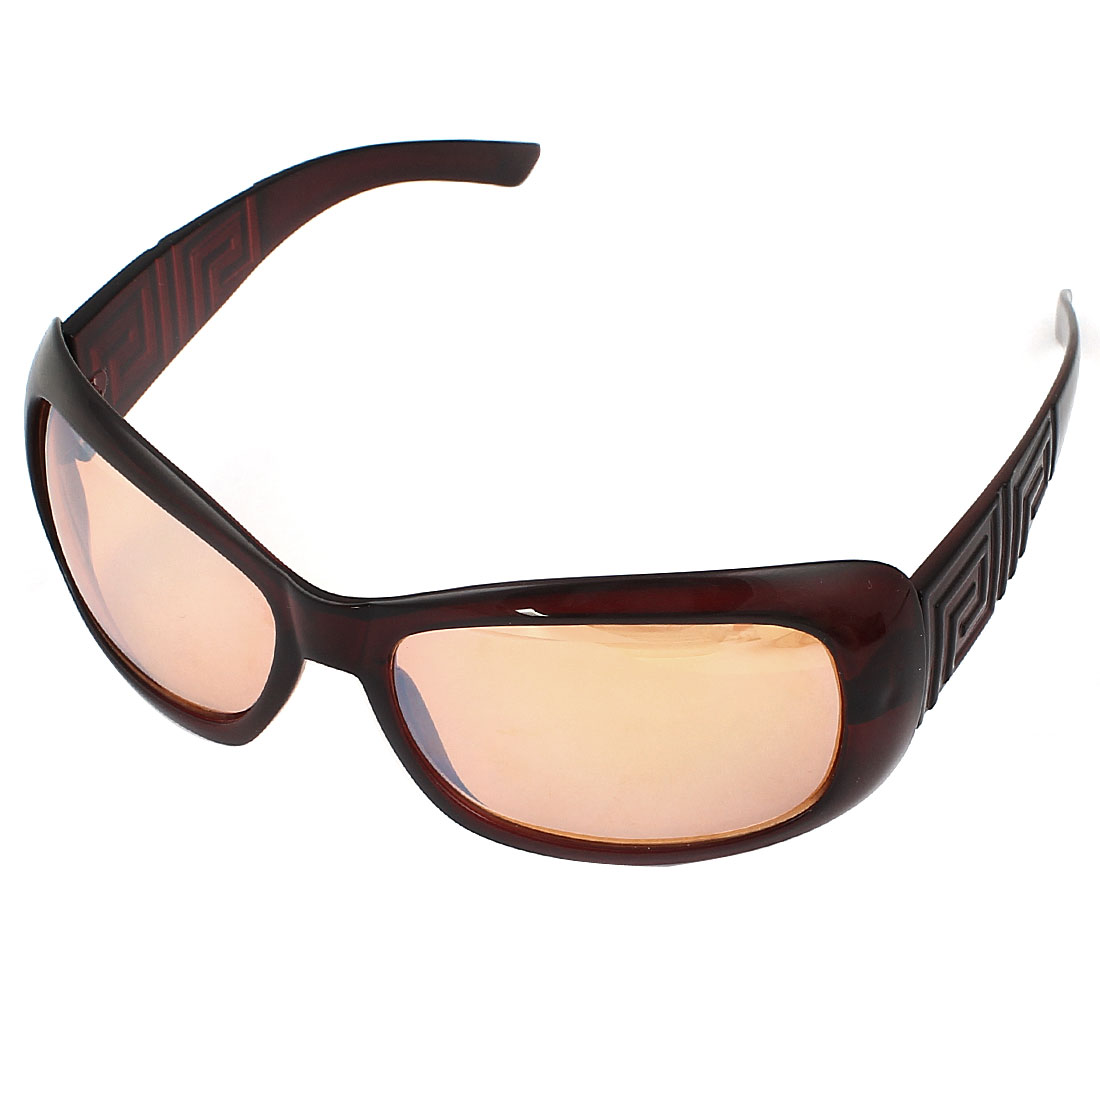 Unisex Plastic Full Rim Round Detail Arm Square Orange Lens Sunglasses Burgundy